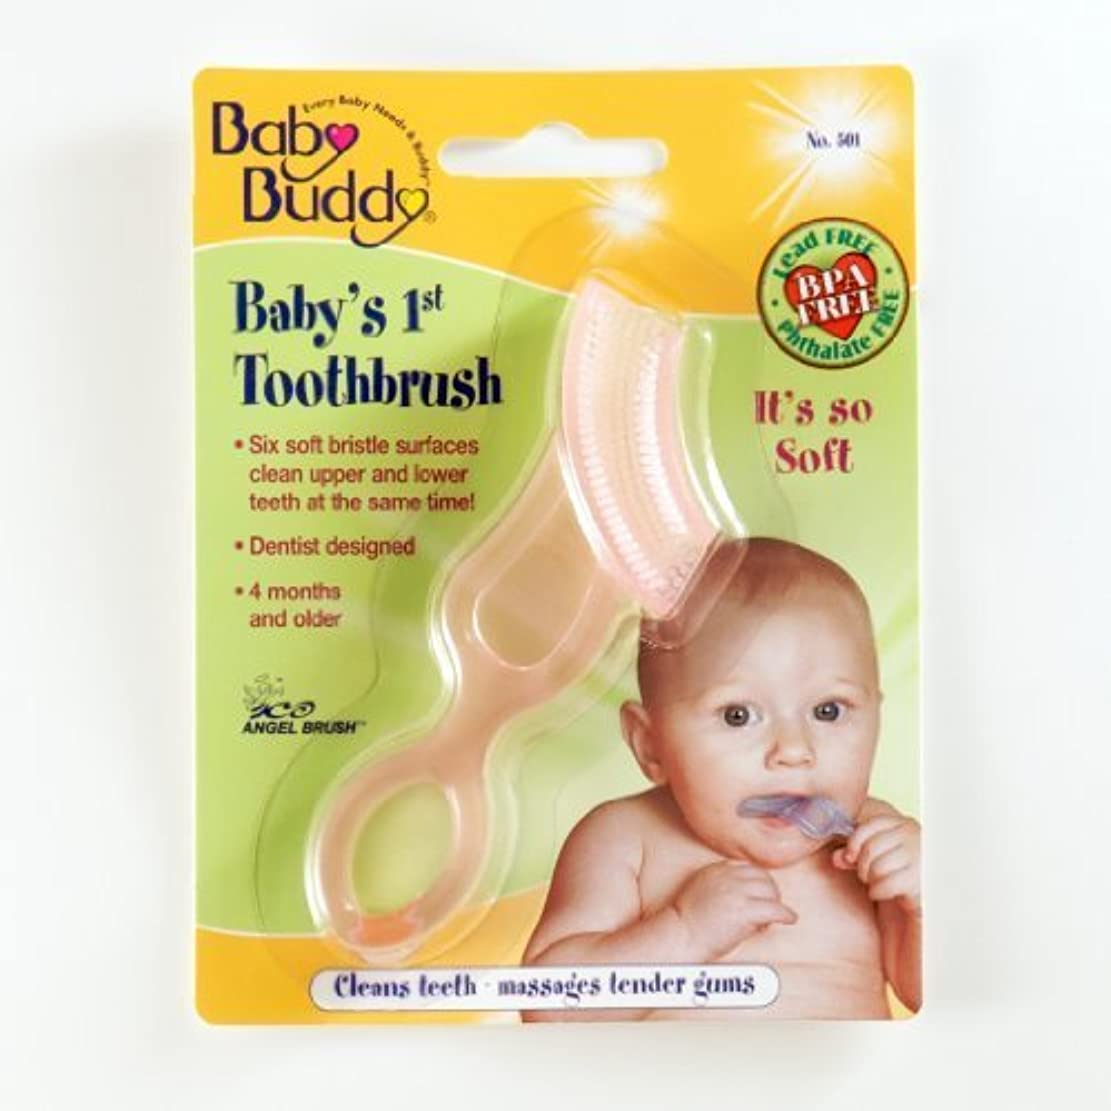 エキスパート矛盾鍔Baby Buddy: Baby's 1st Toothbrush by Baby Buddy [並行輸入品]